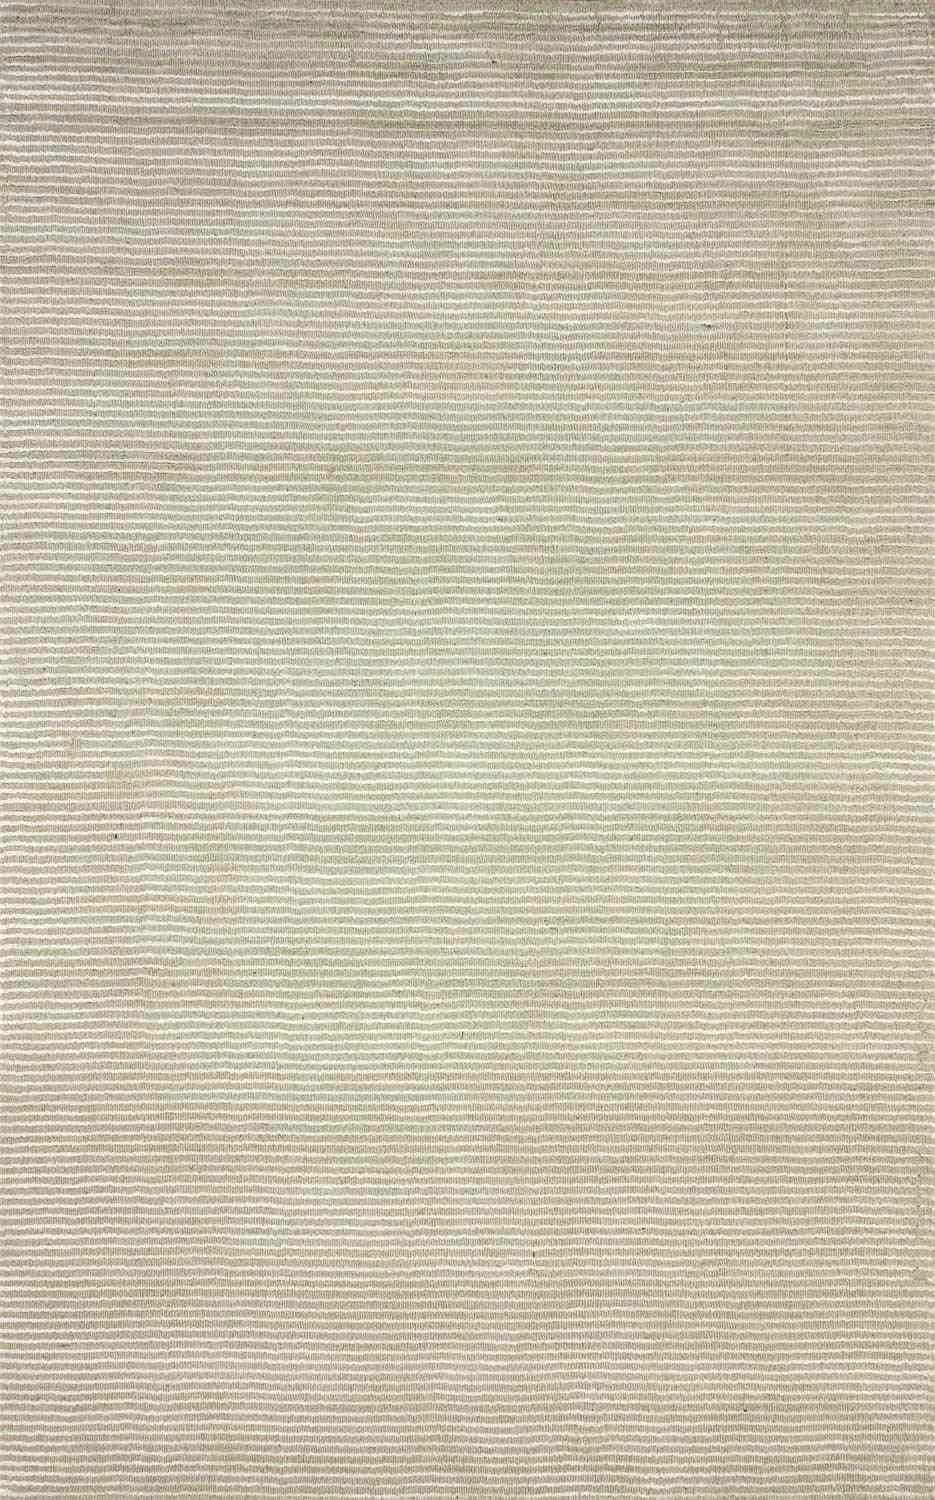 nuloom cero viscose solid/striped area rug collection